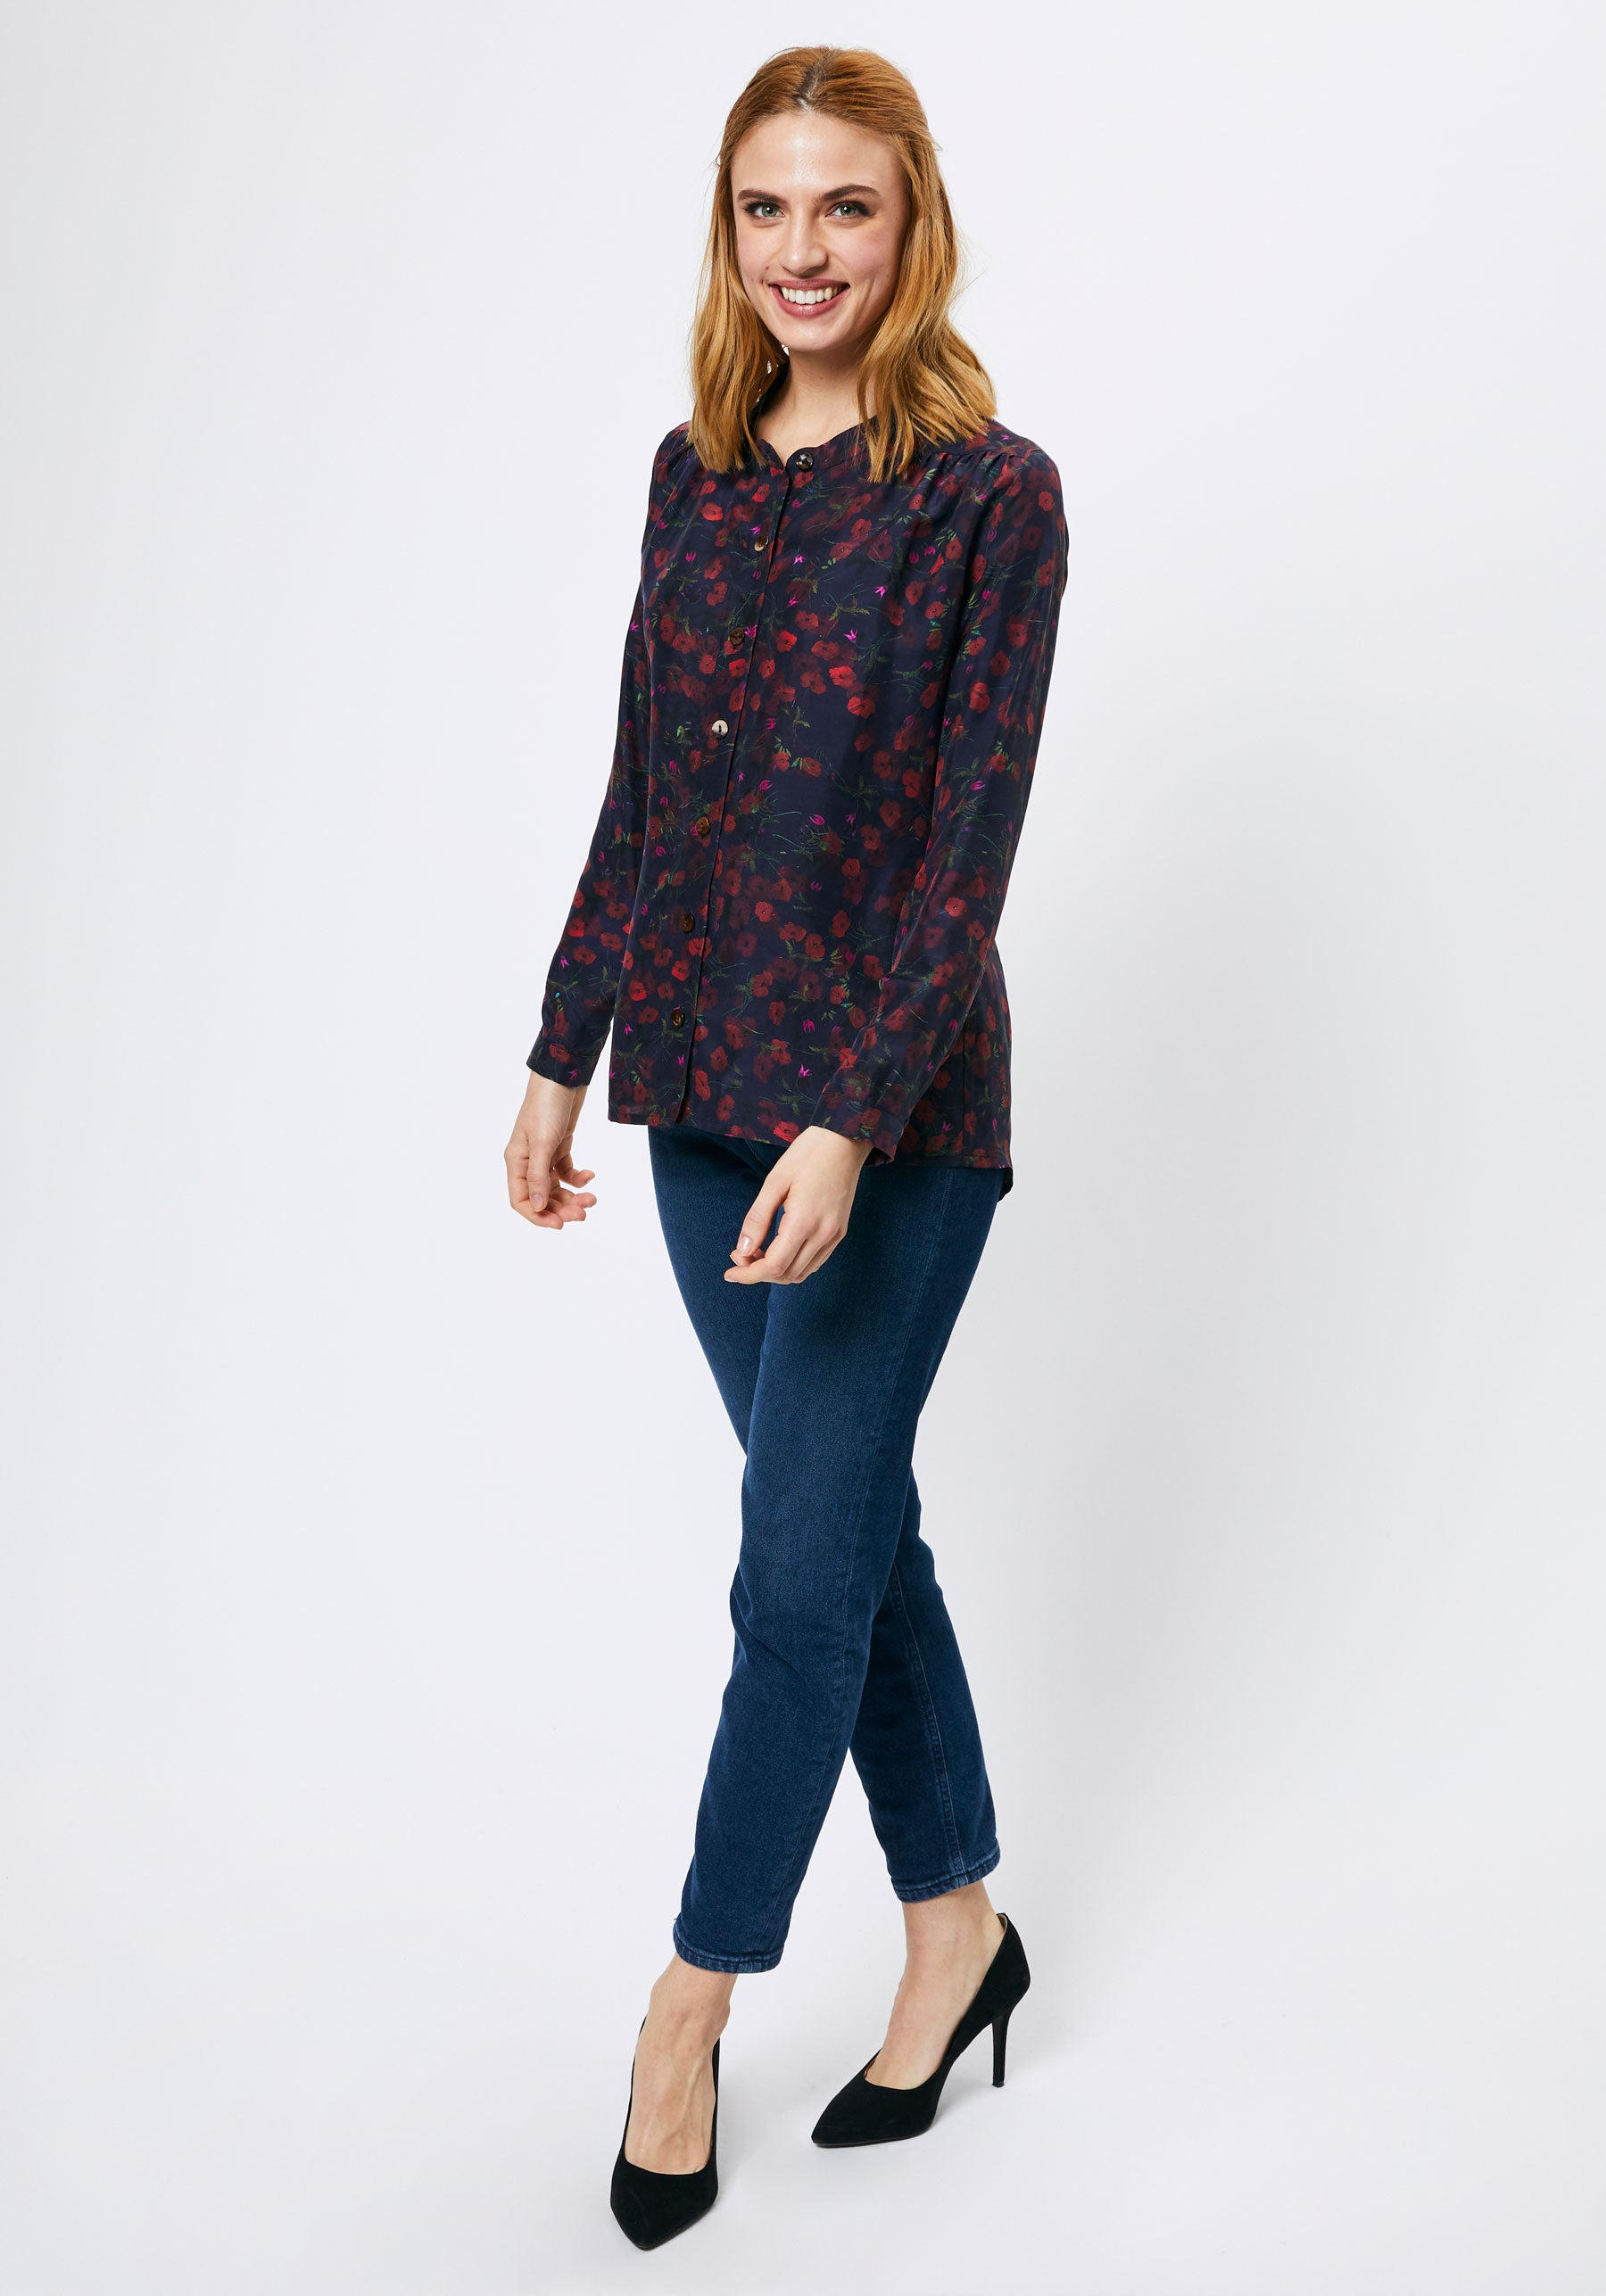 Harkness Shirt in Navy Pablo Print